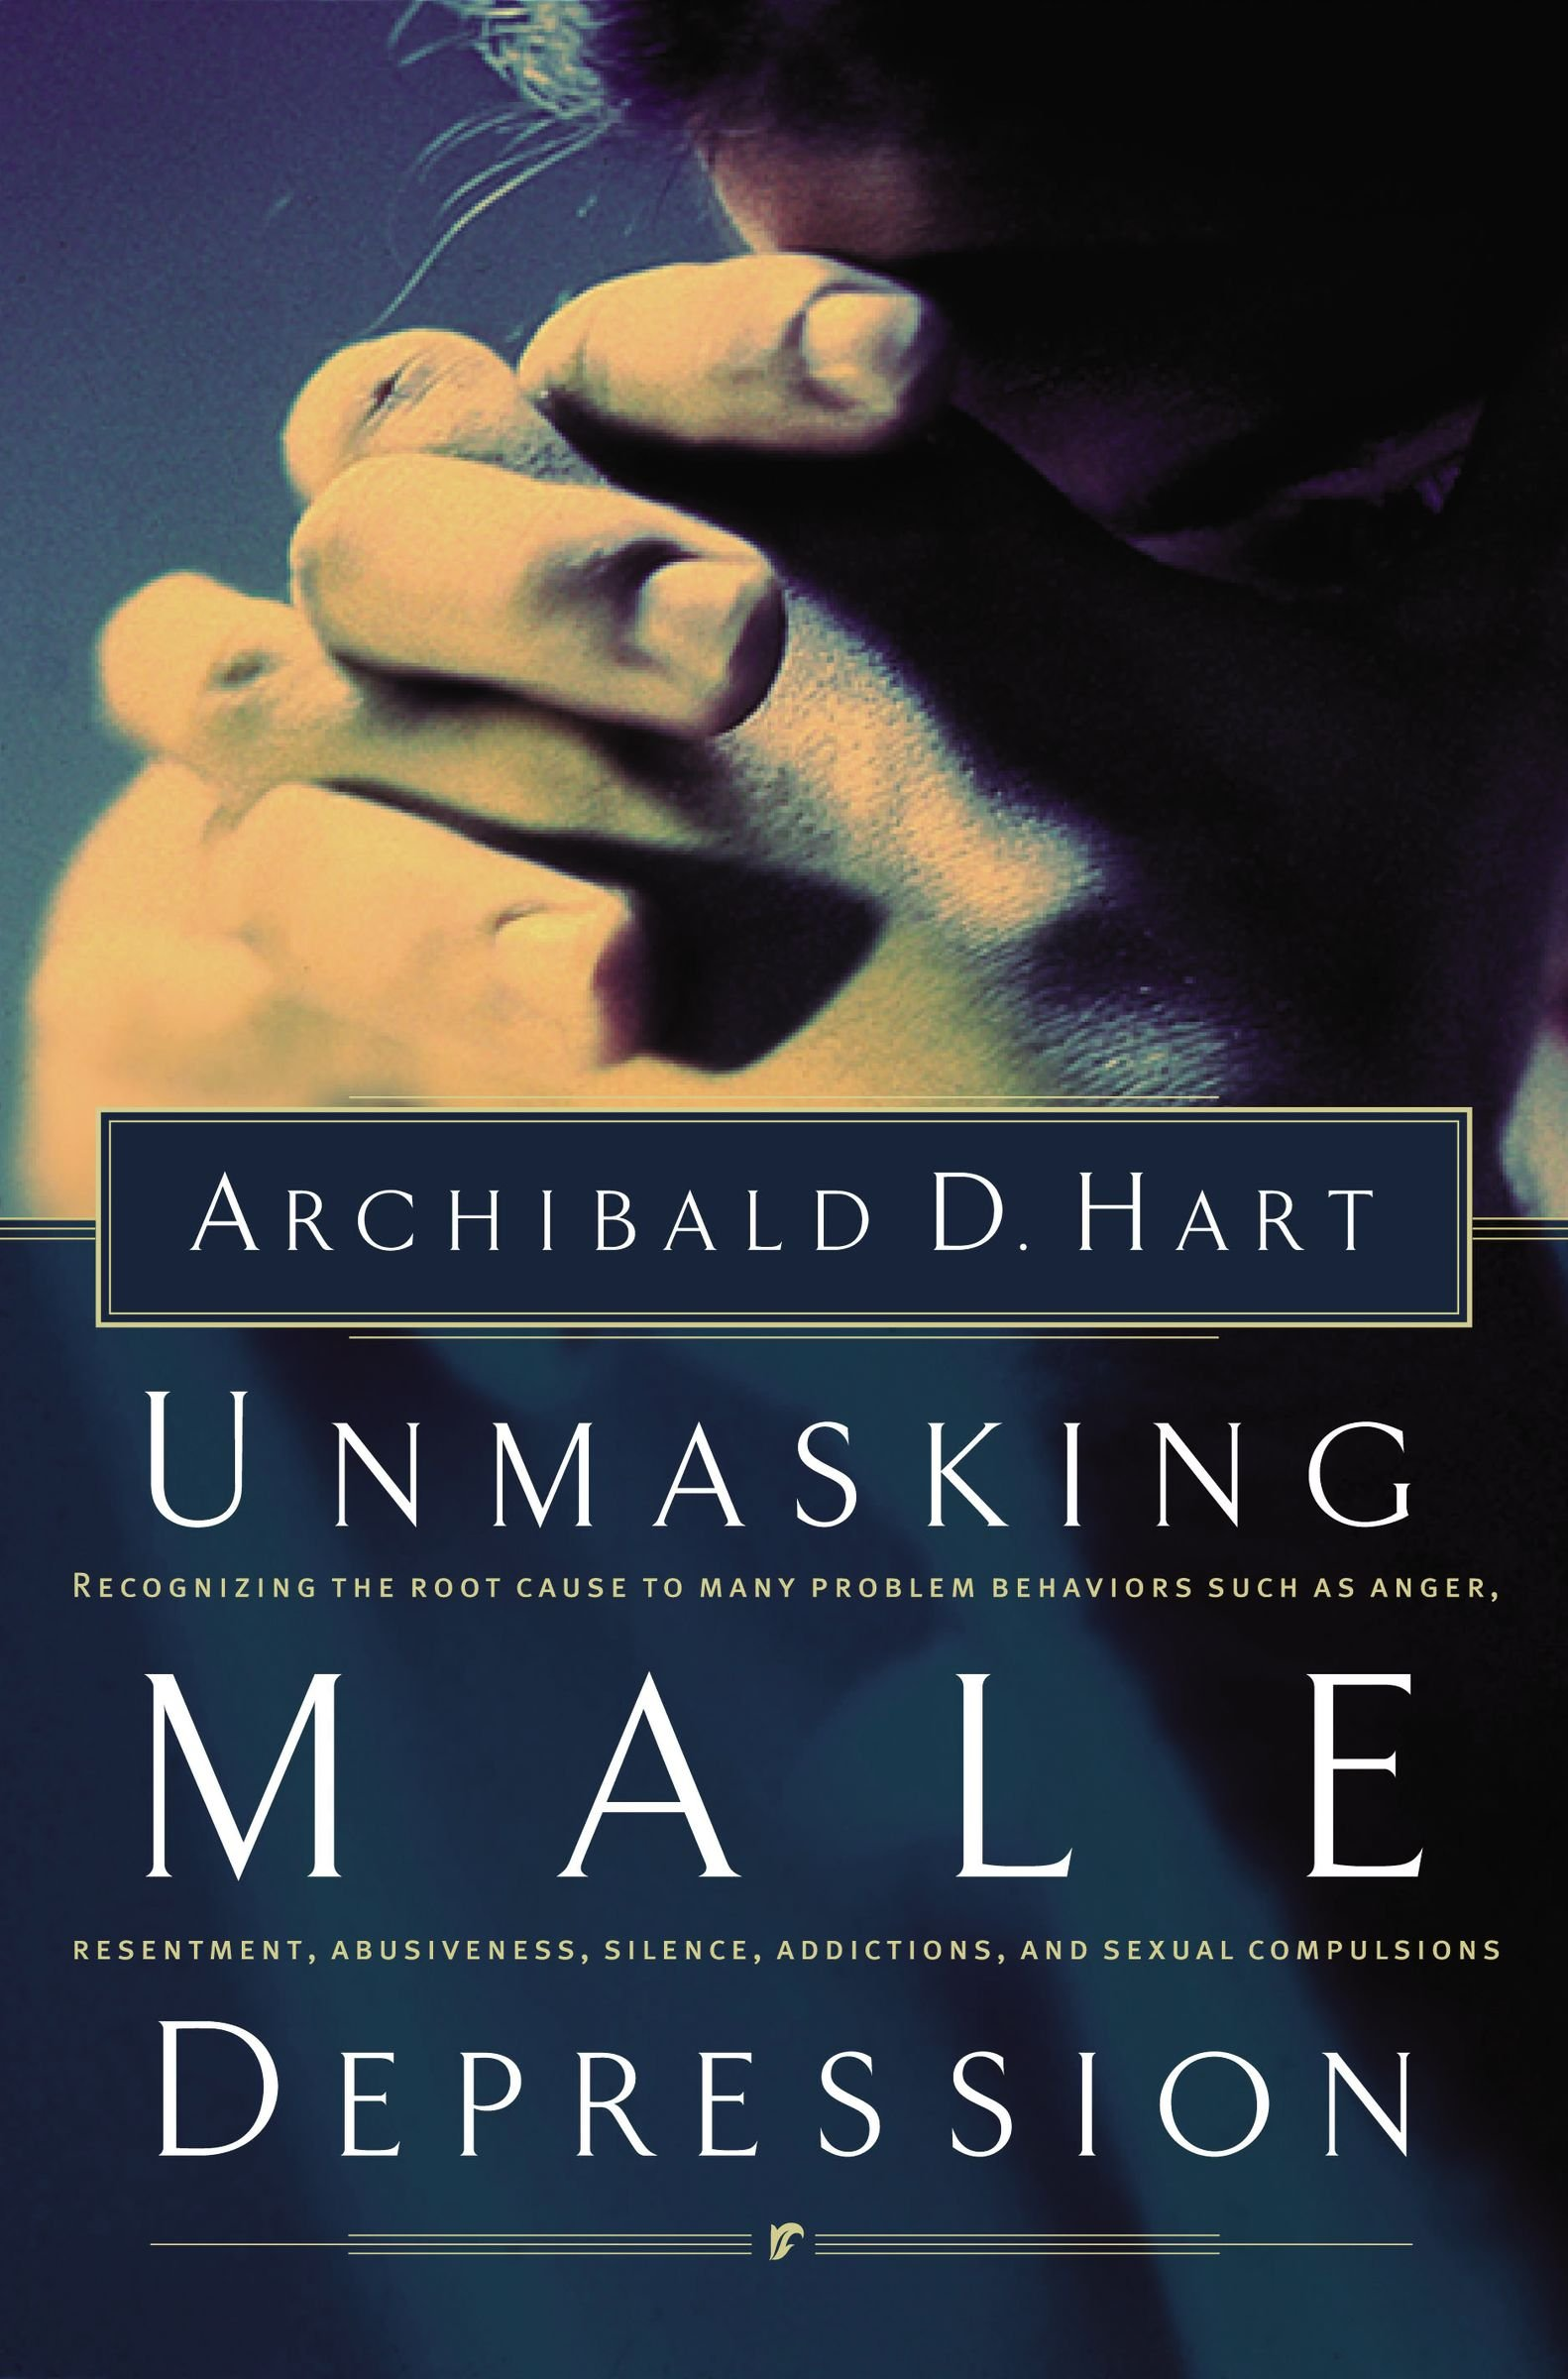 Unmasking Male Depression: Recognizing the Root Cause to